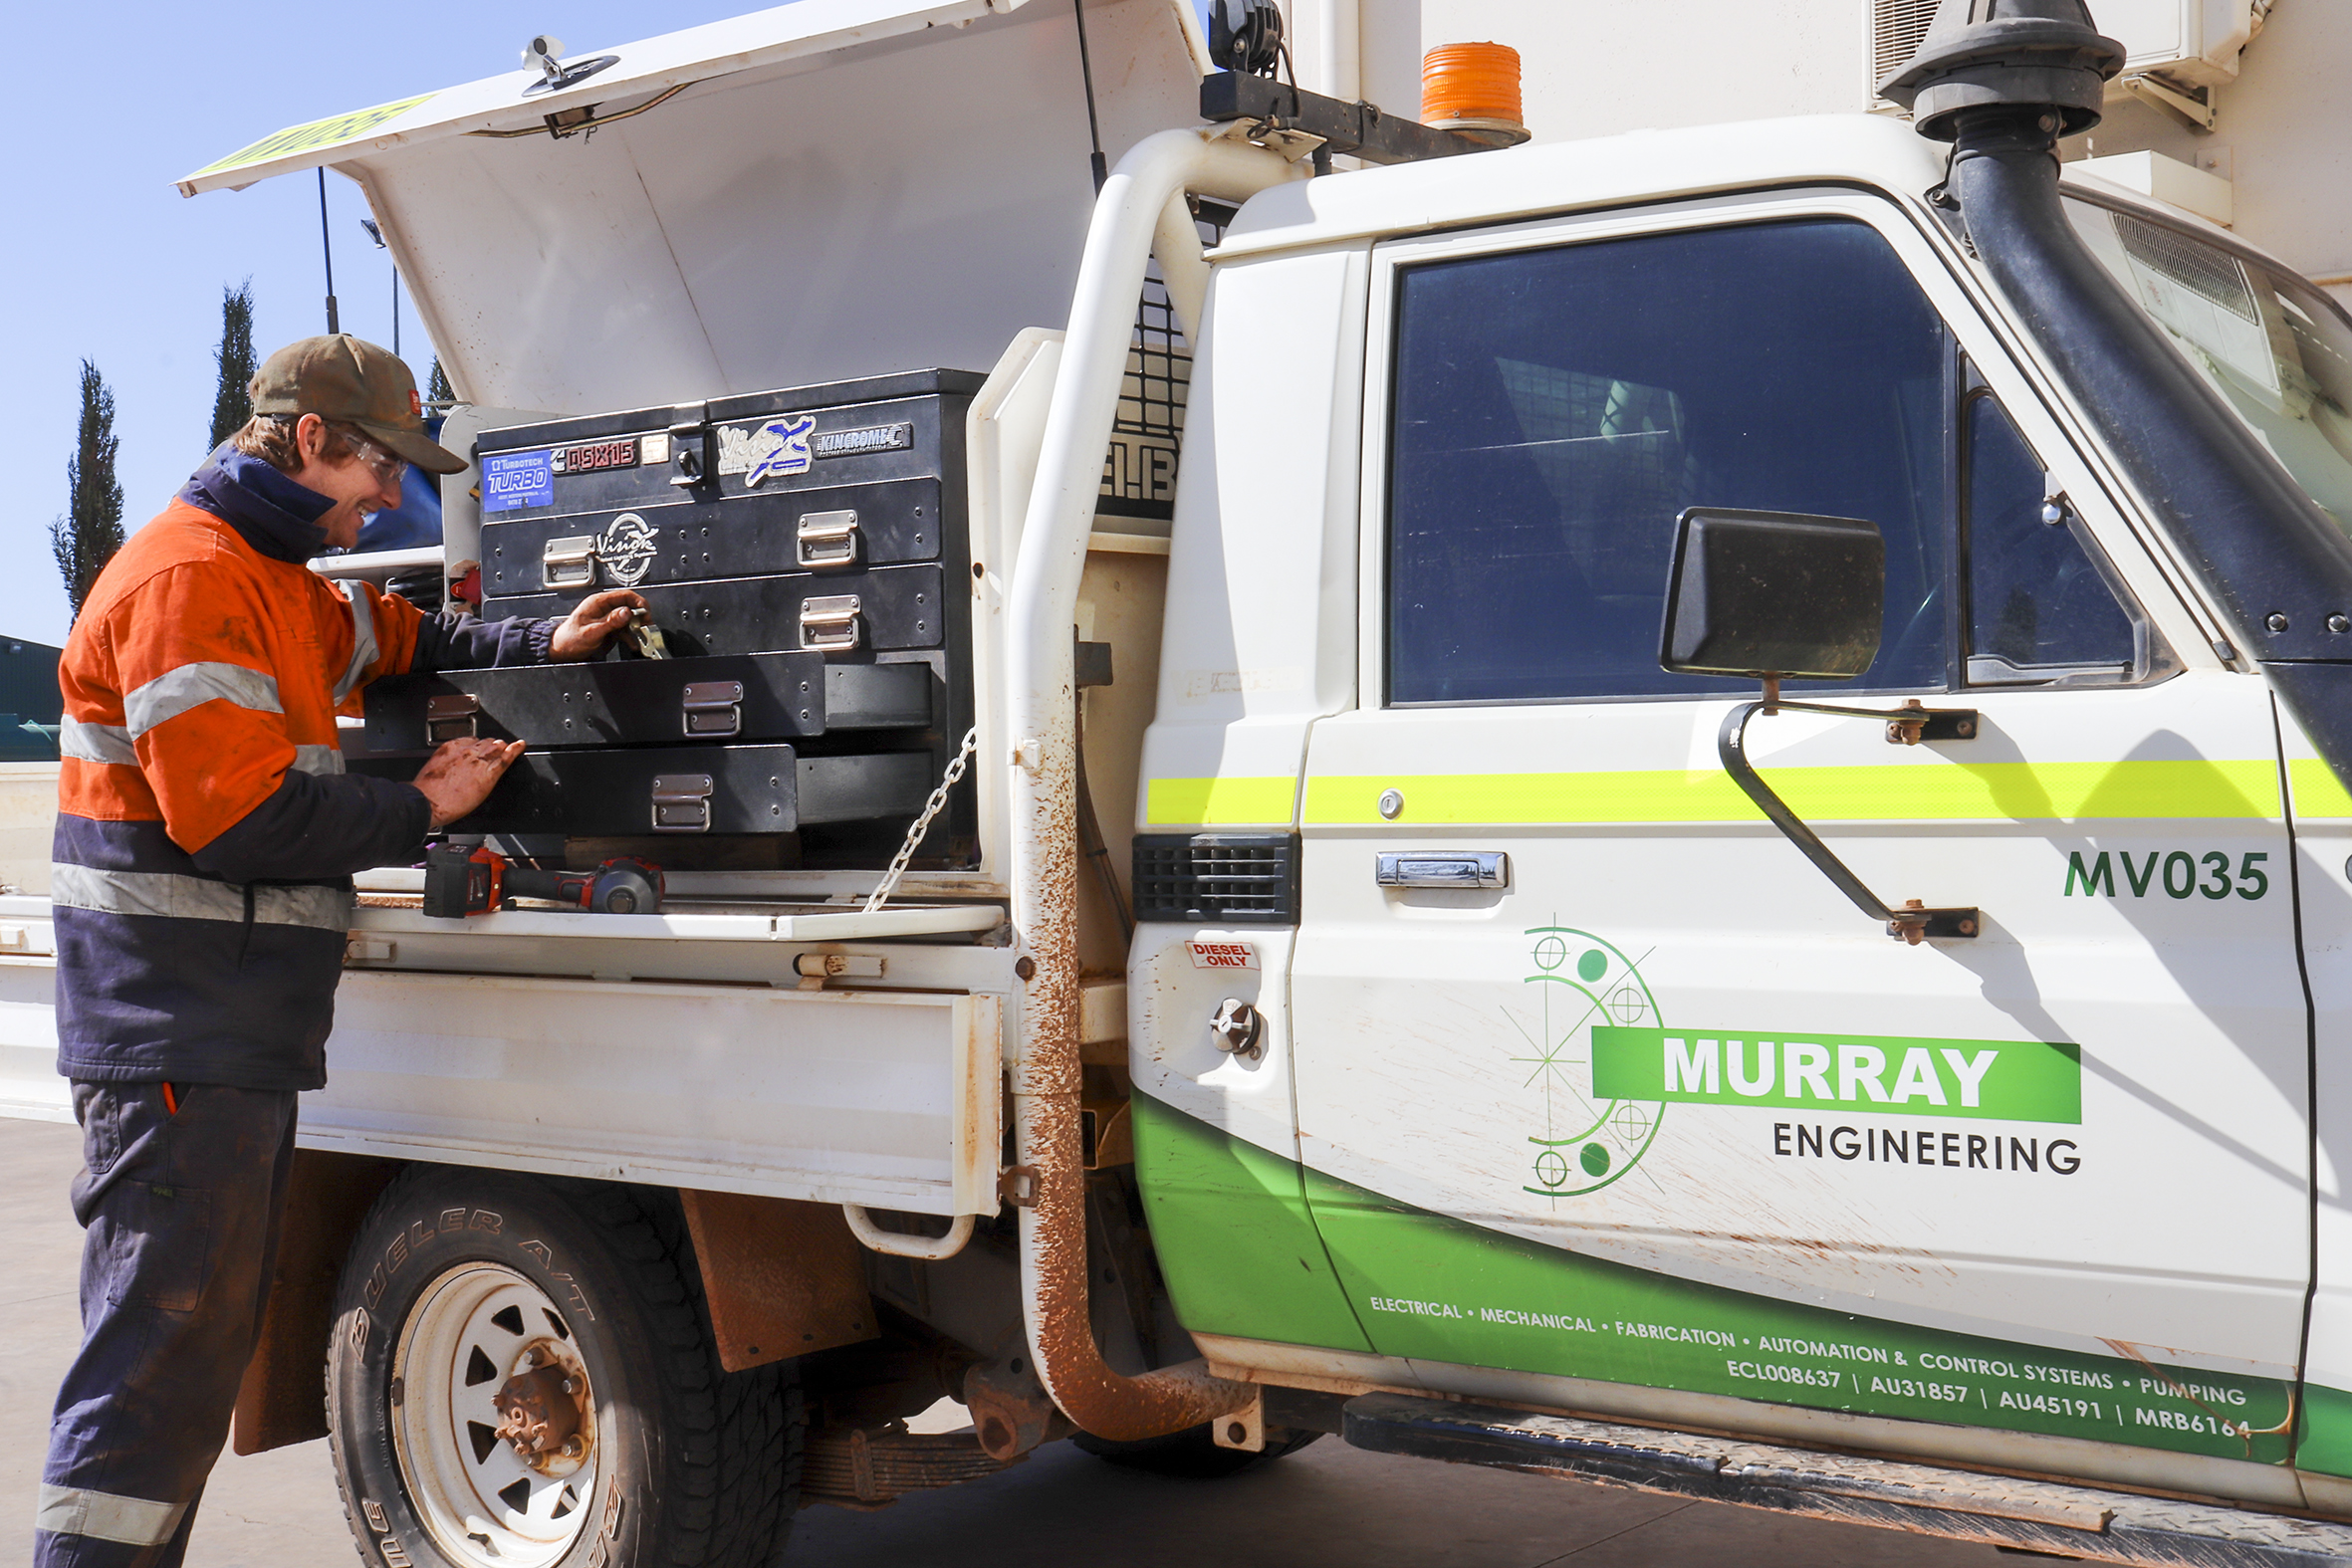 Mechanical Field Service truck operated by Murray Engineering.